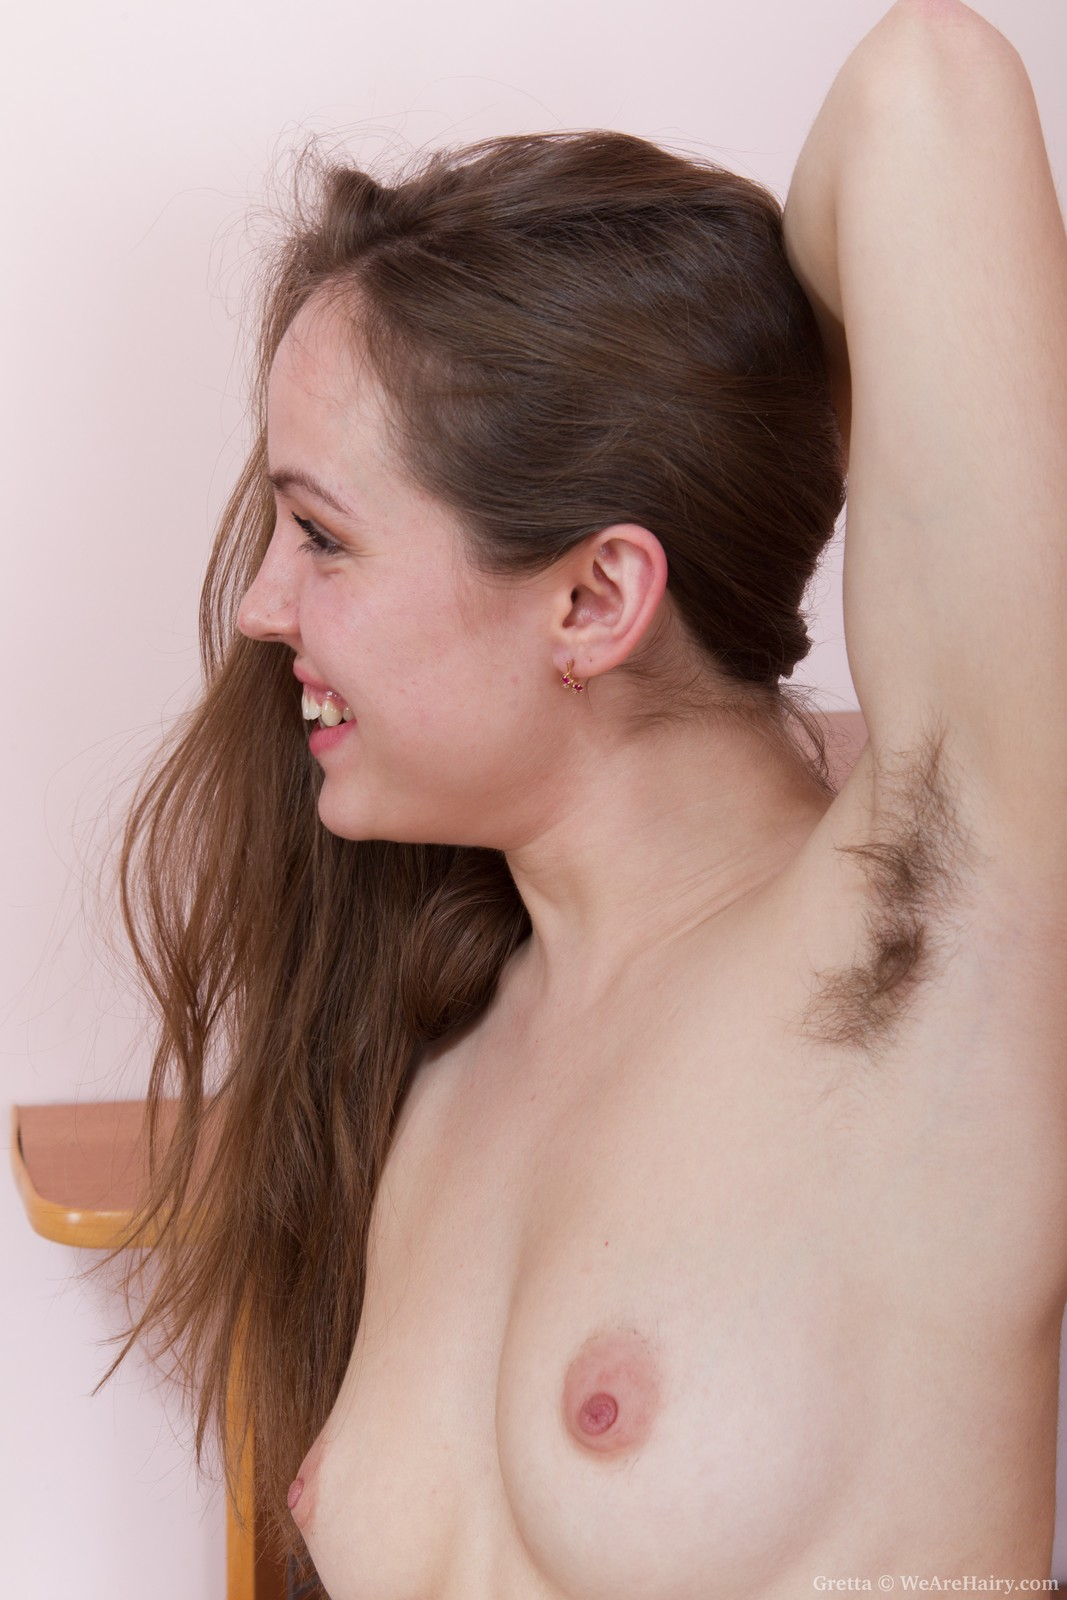 Hairy women arms with girls